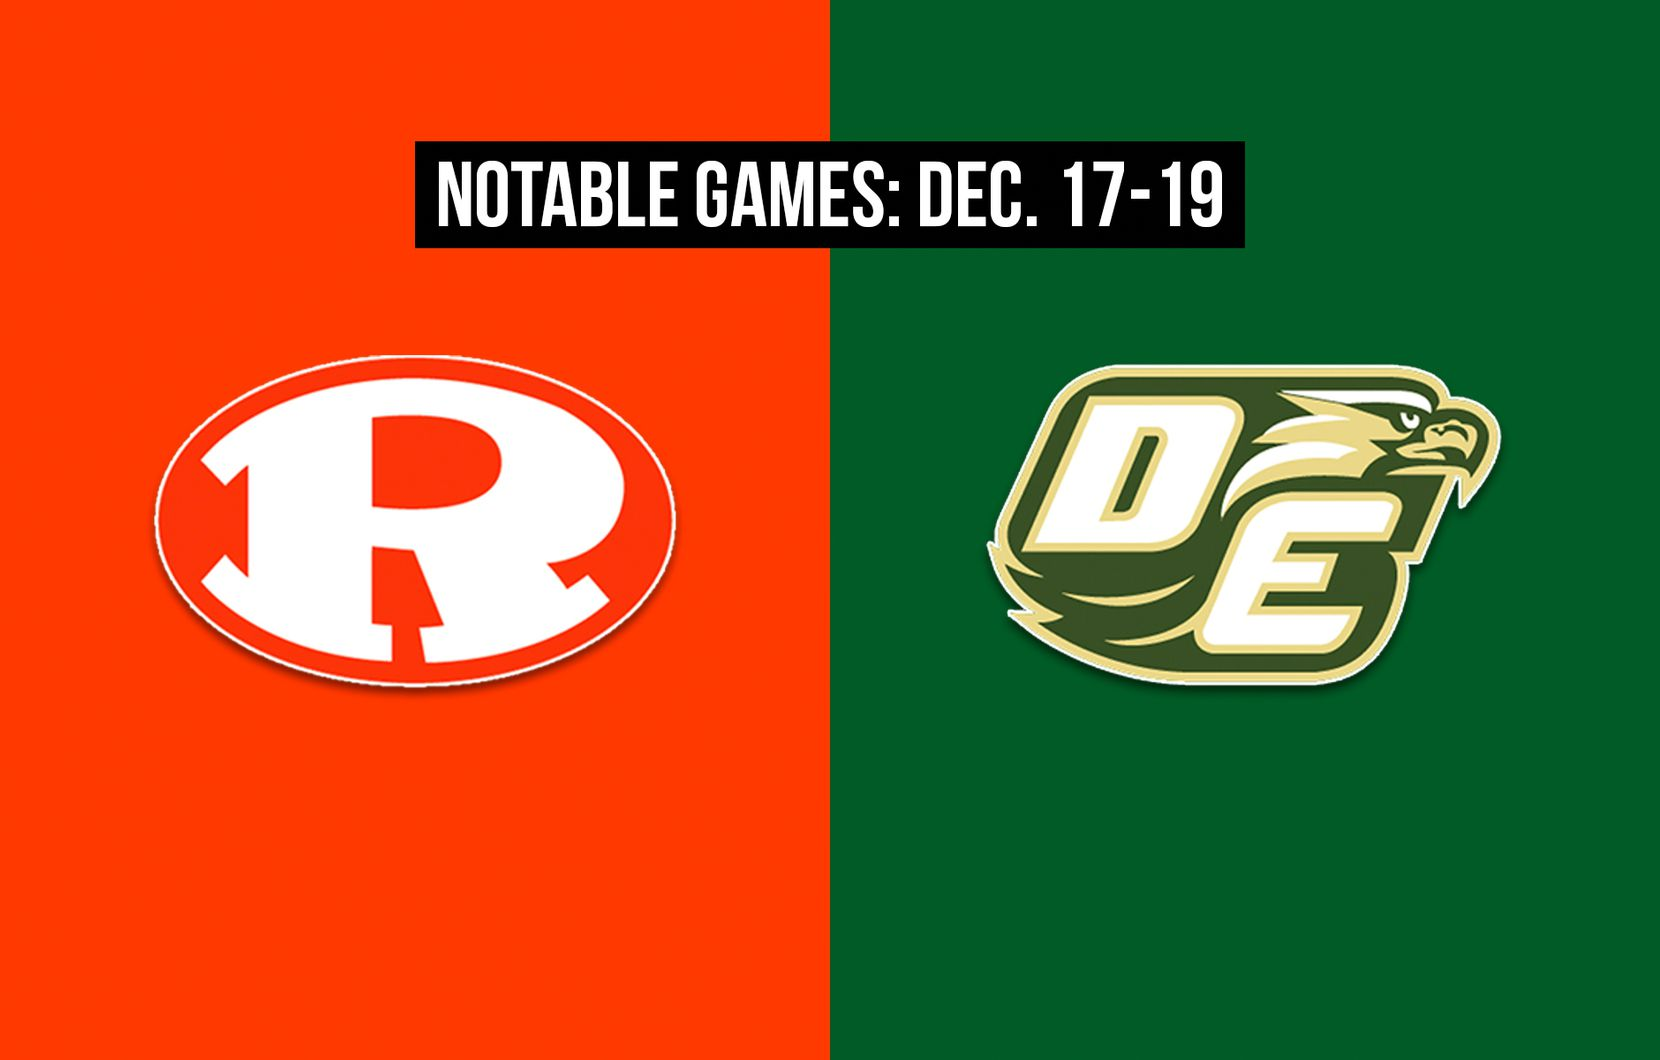 Notable games for the week of Dec. 17-19 of the 2020 season: Rockwall vs. DeSoto.